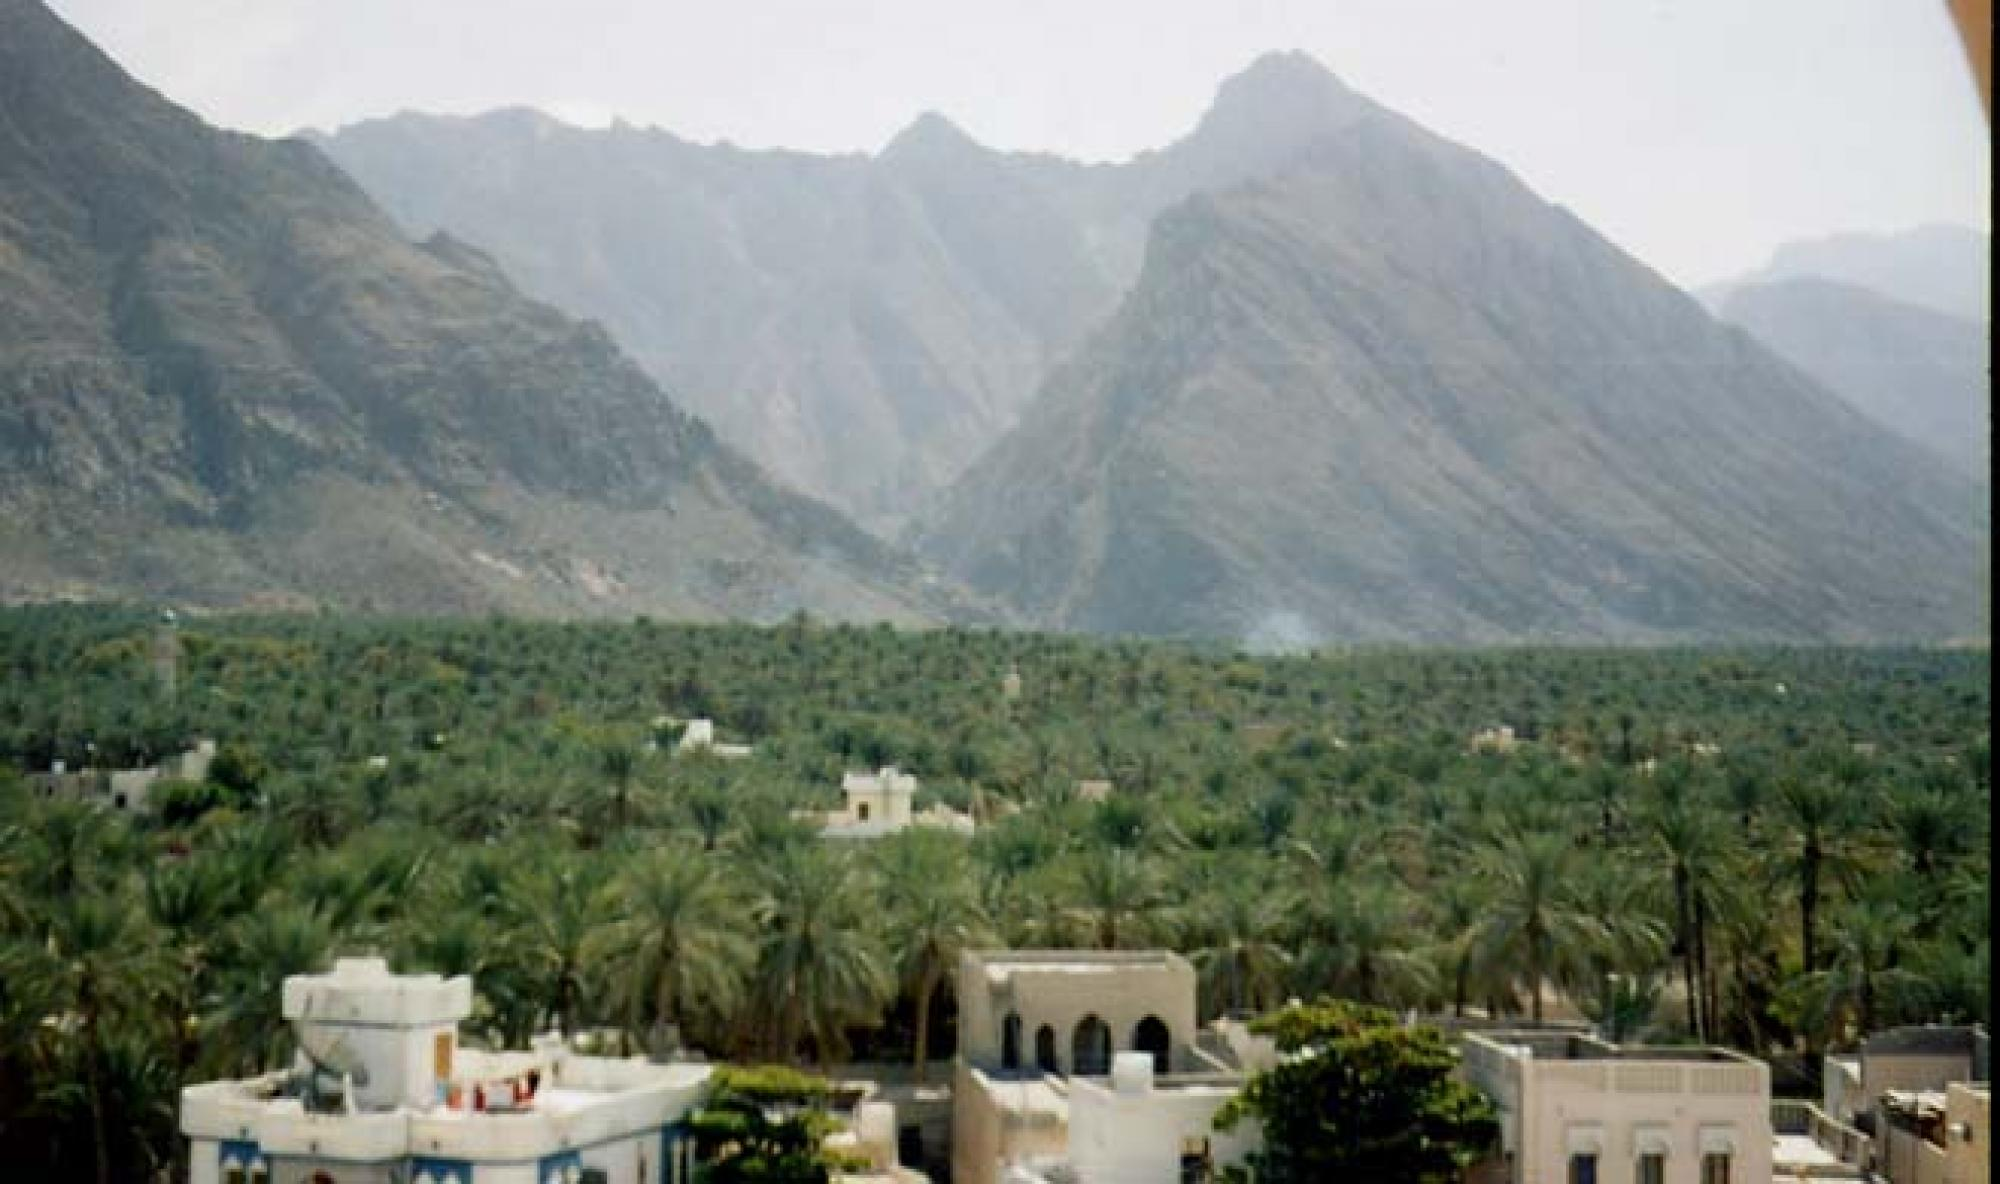 A date palm tree farm in Oman.